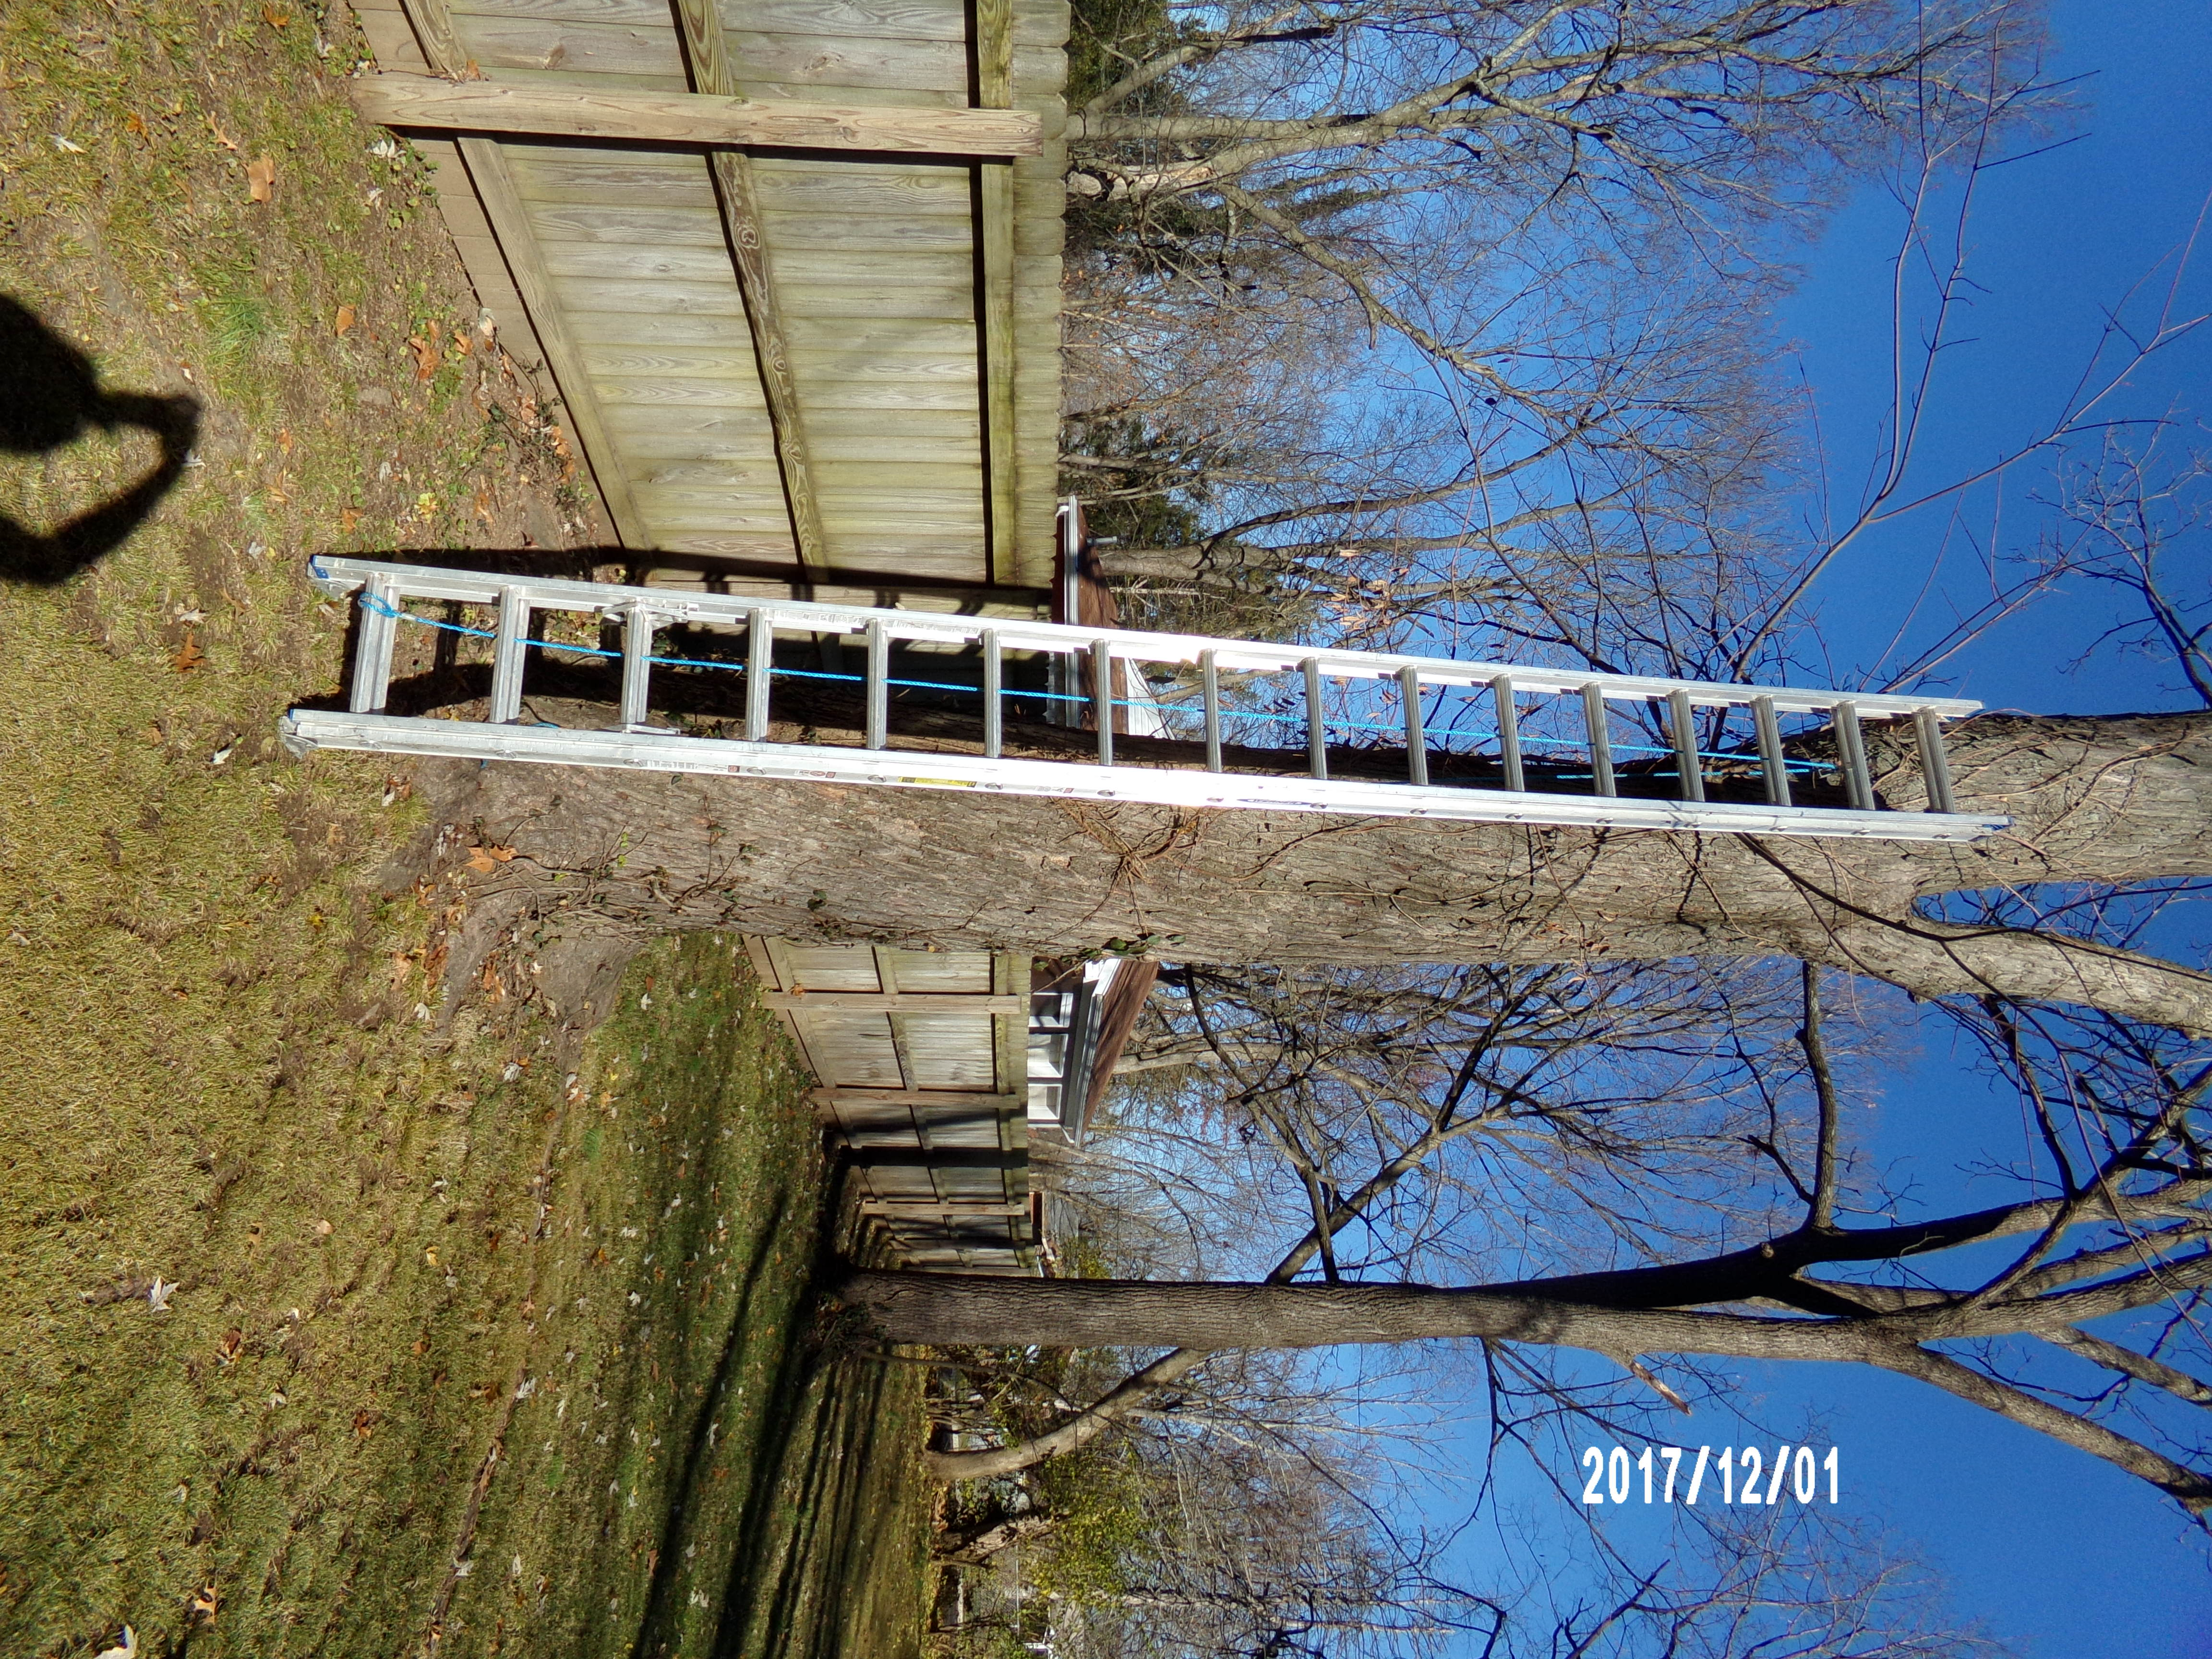 WERNER 32-FOOT EXTENSION LADDER